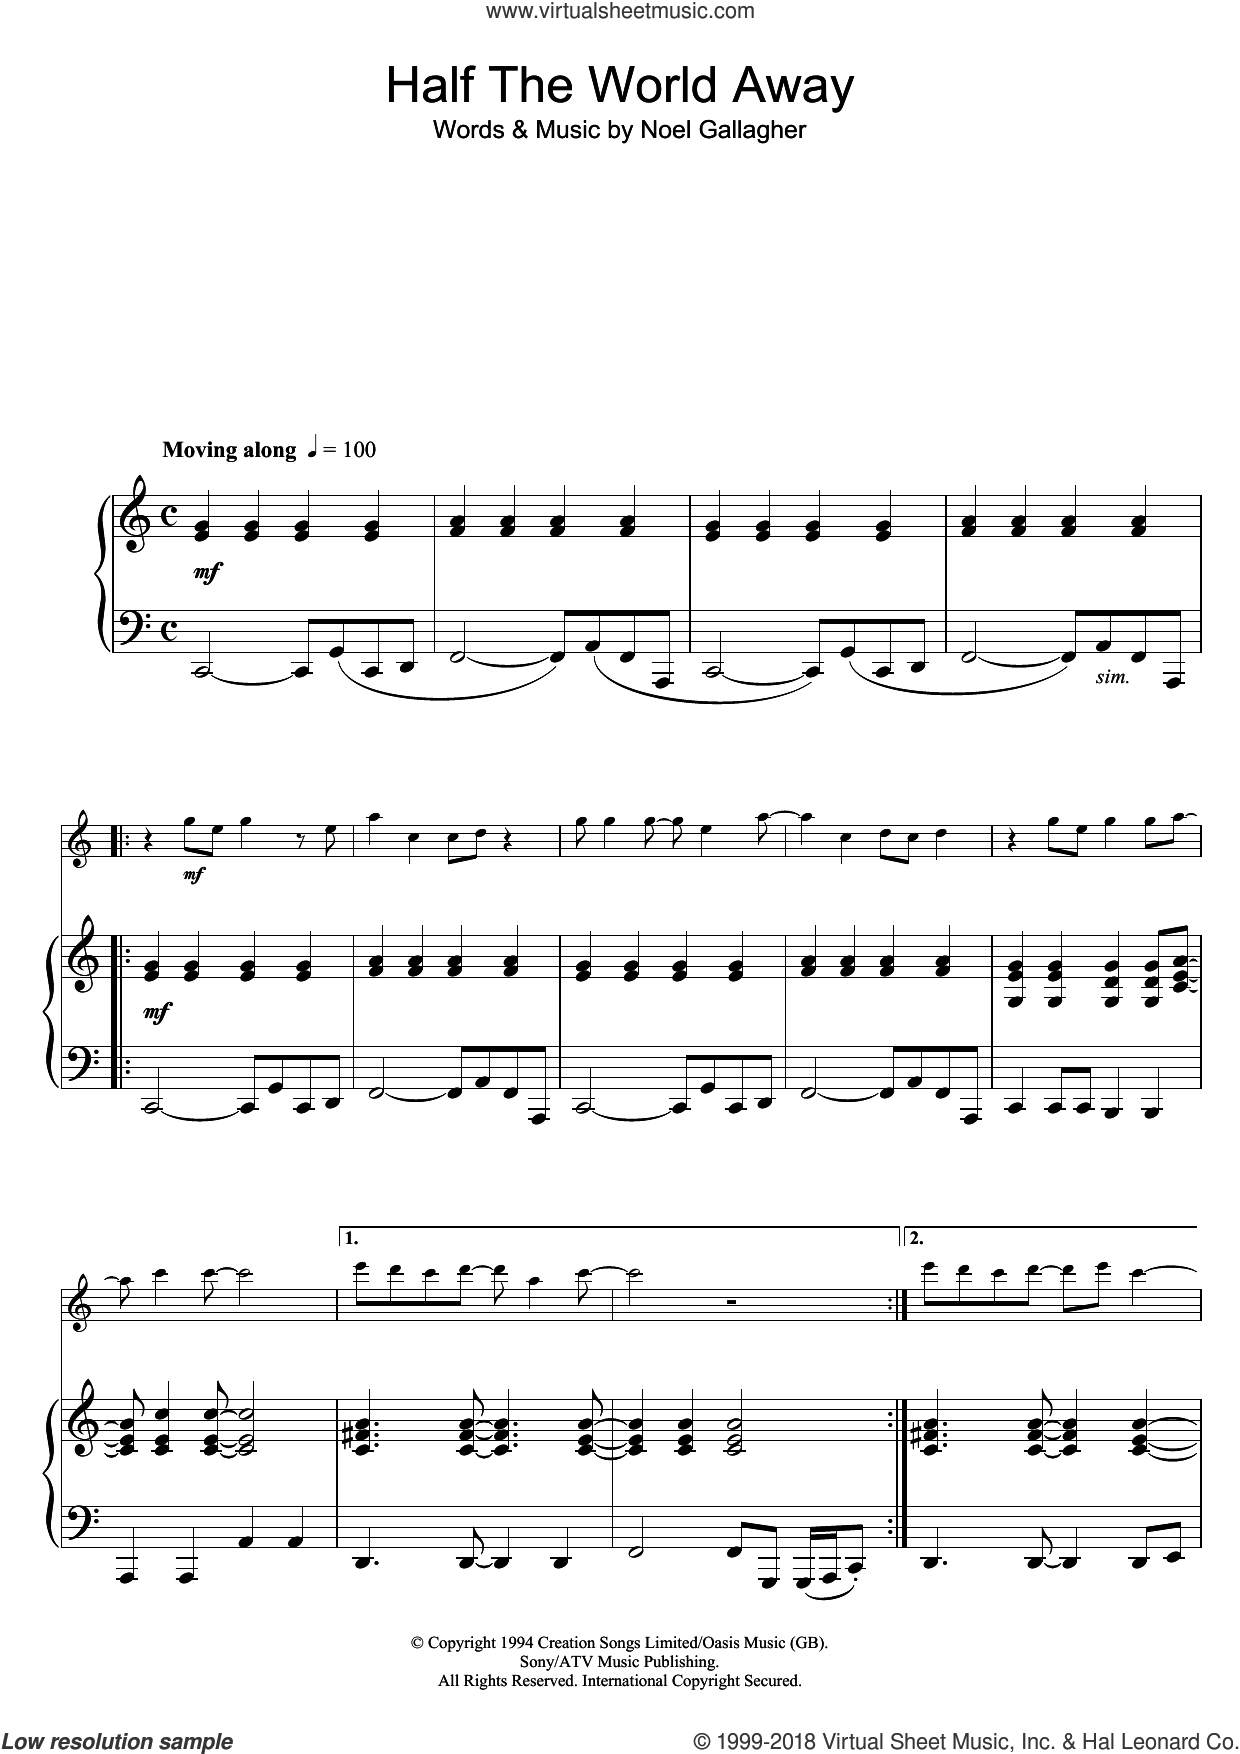 Half The World Away sheet music for flute solo by Oasis and Noel Gallagher, intermediate skill level